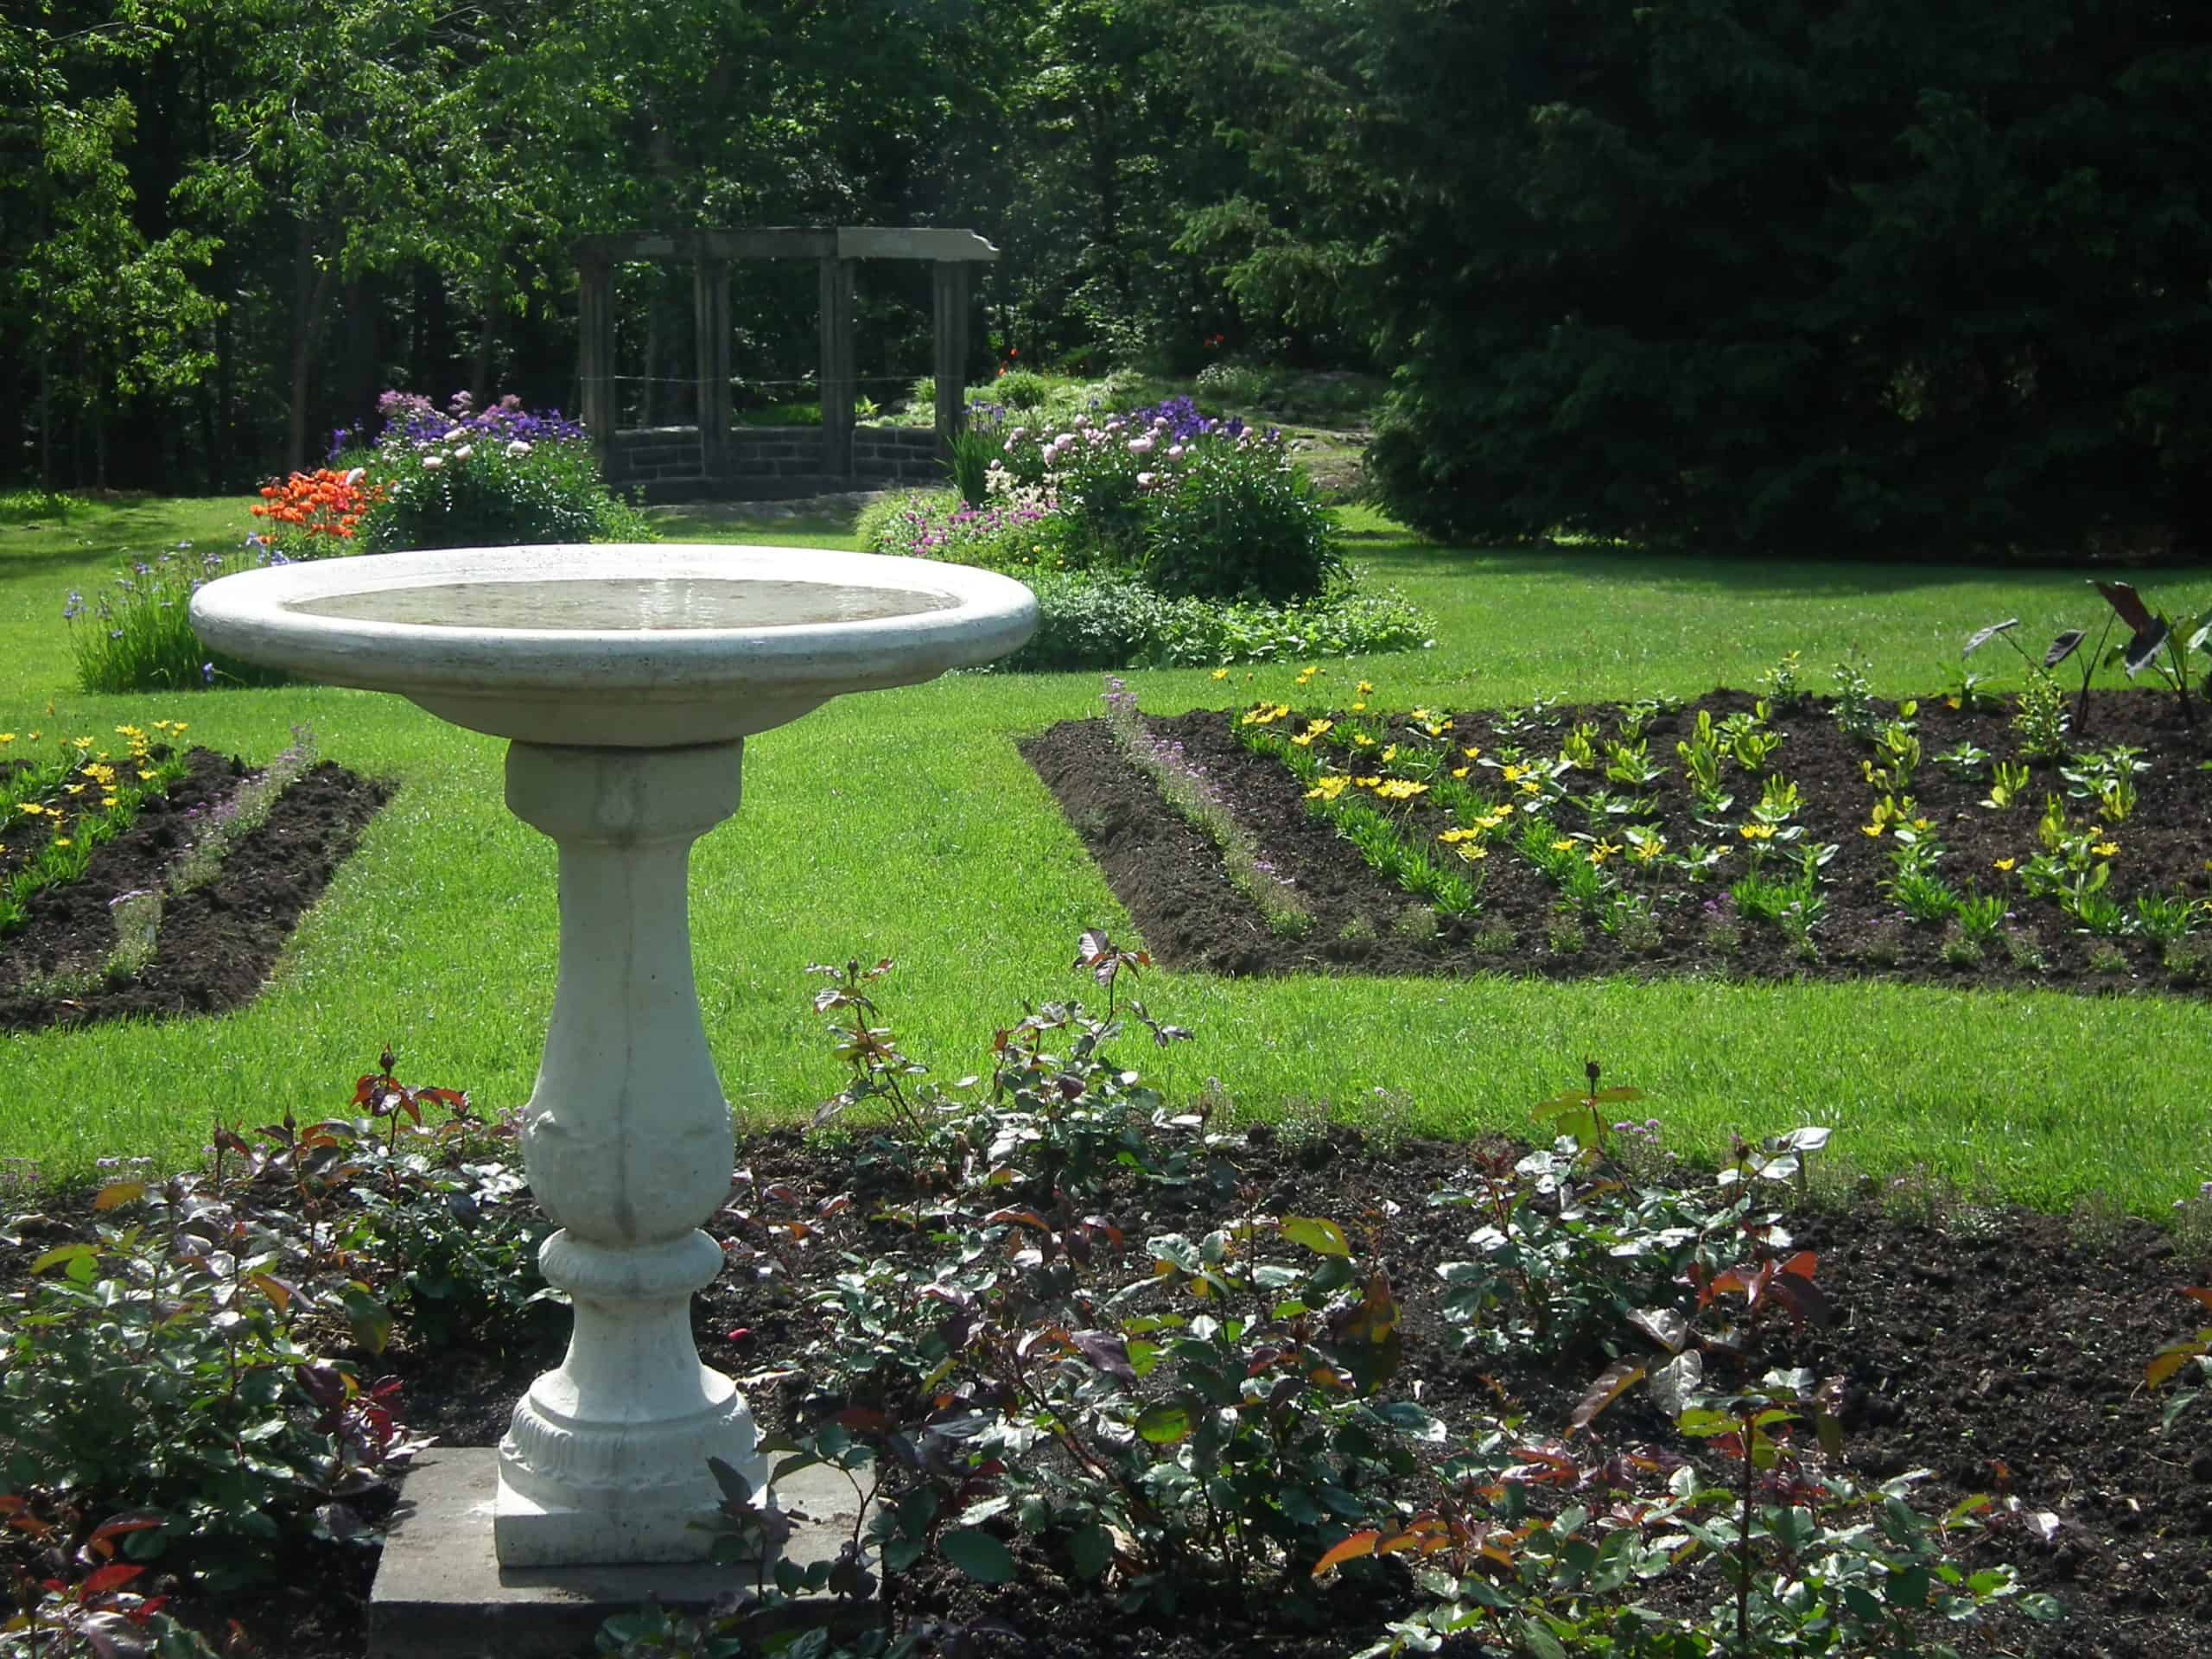 A birdbath was one of three elements King used in all his landscapes, along with a sundial and a flag.